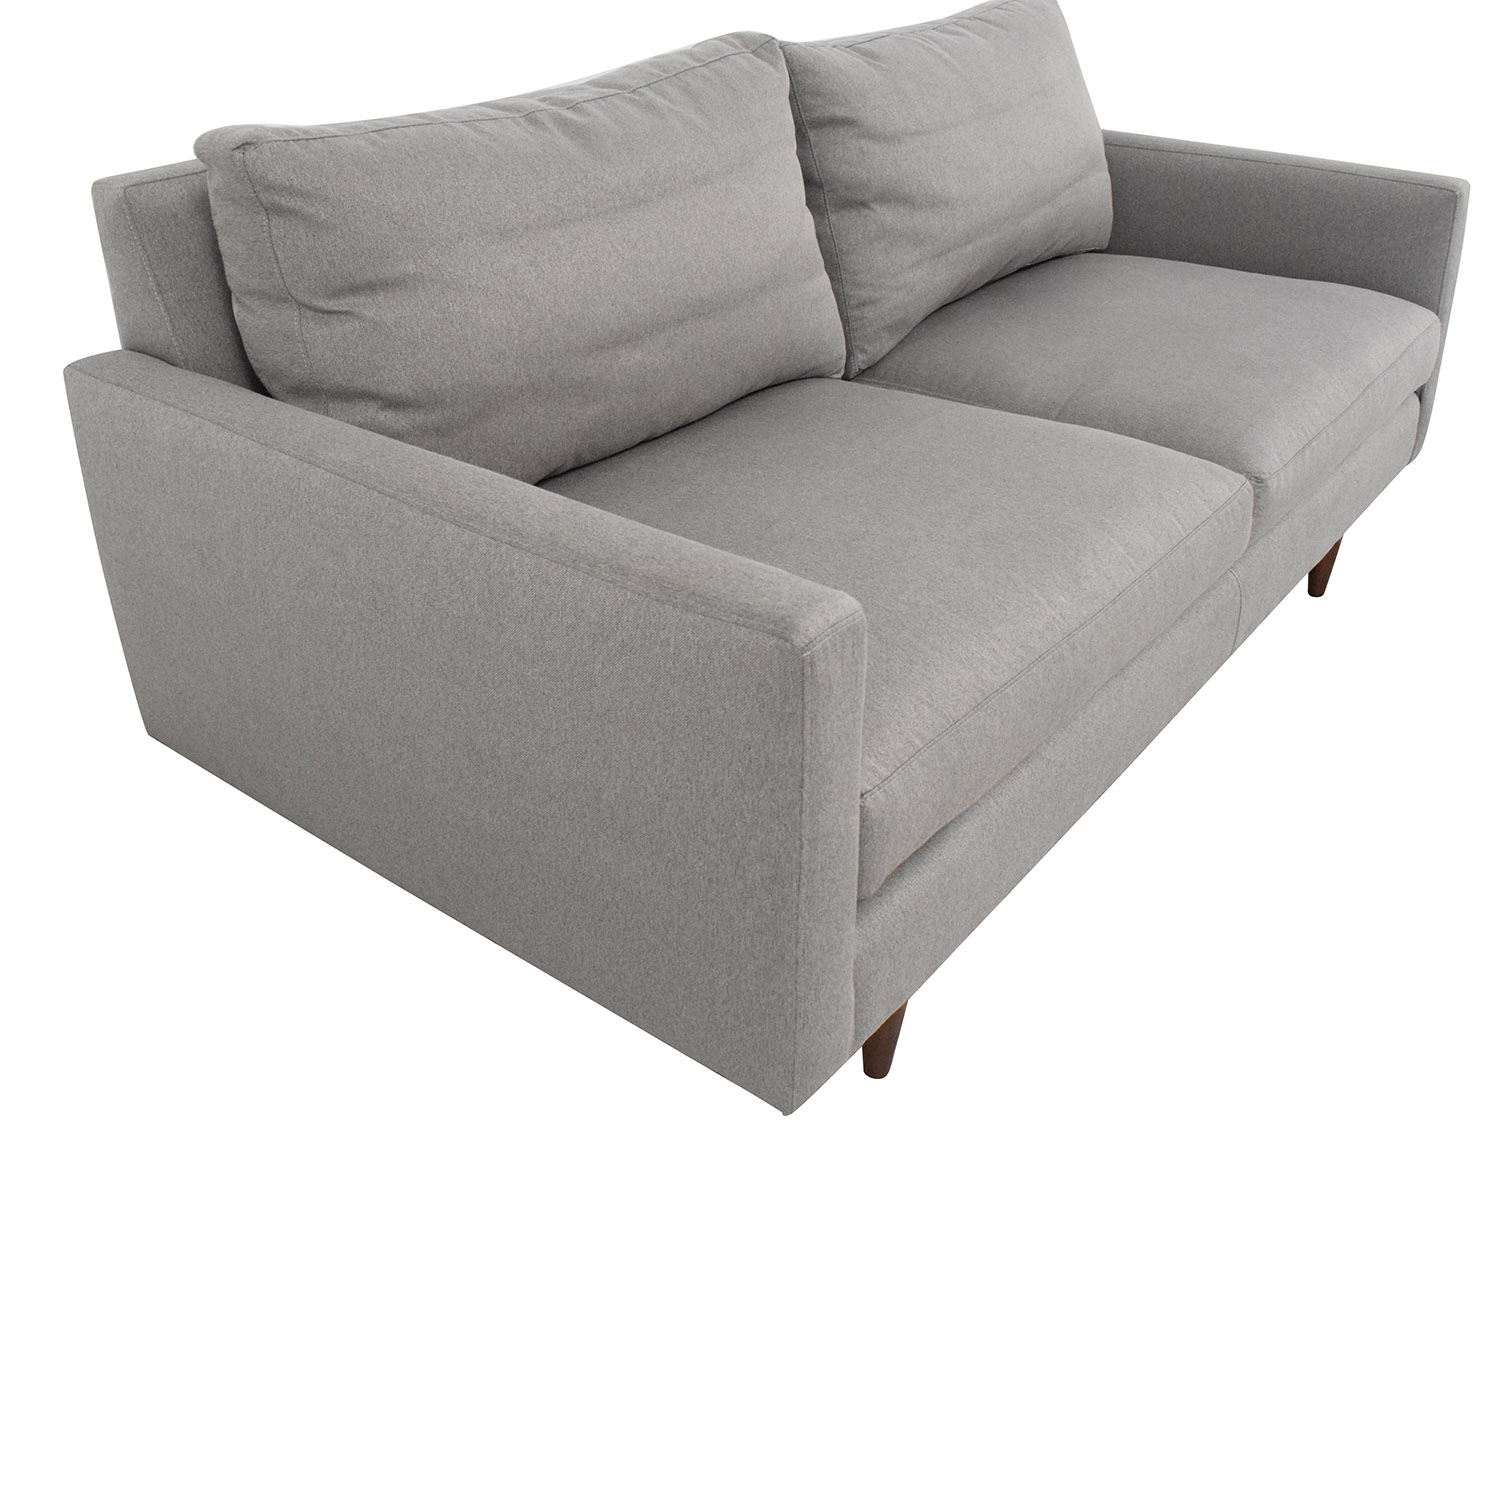 buy Room & Board Jasper Loveseat Room & Board Loveseats